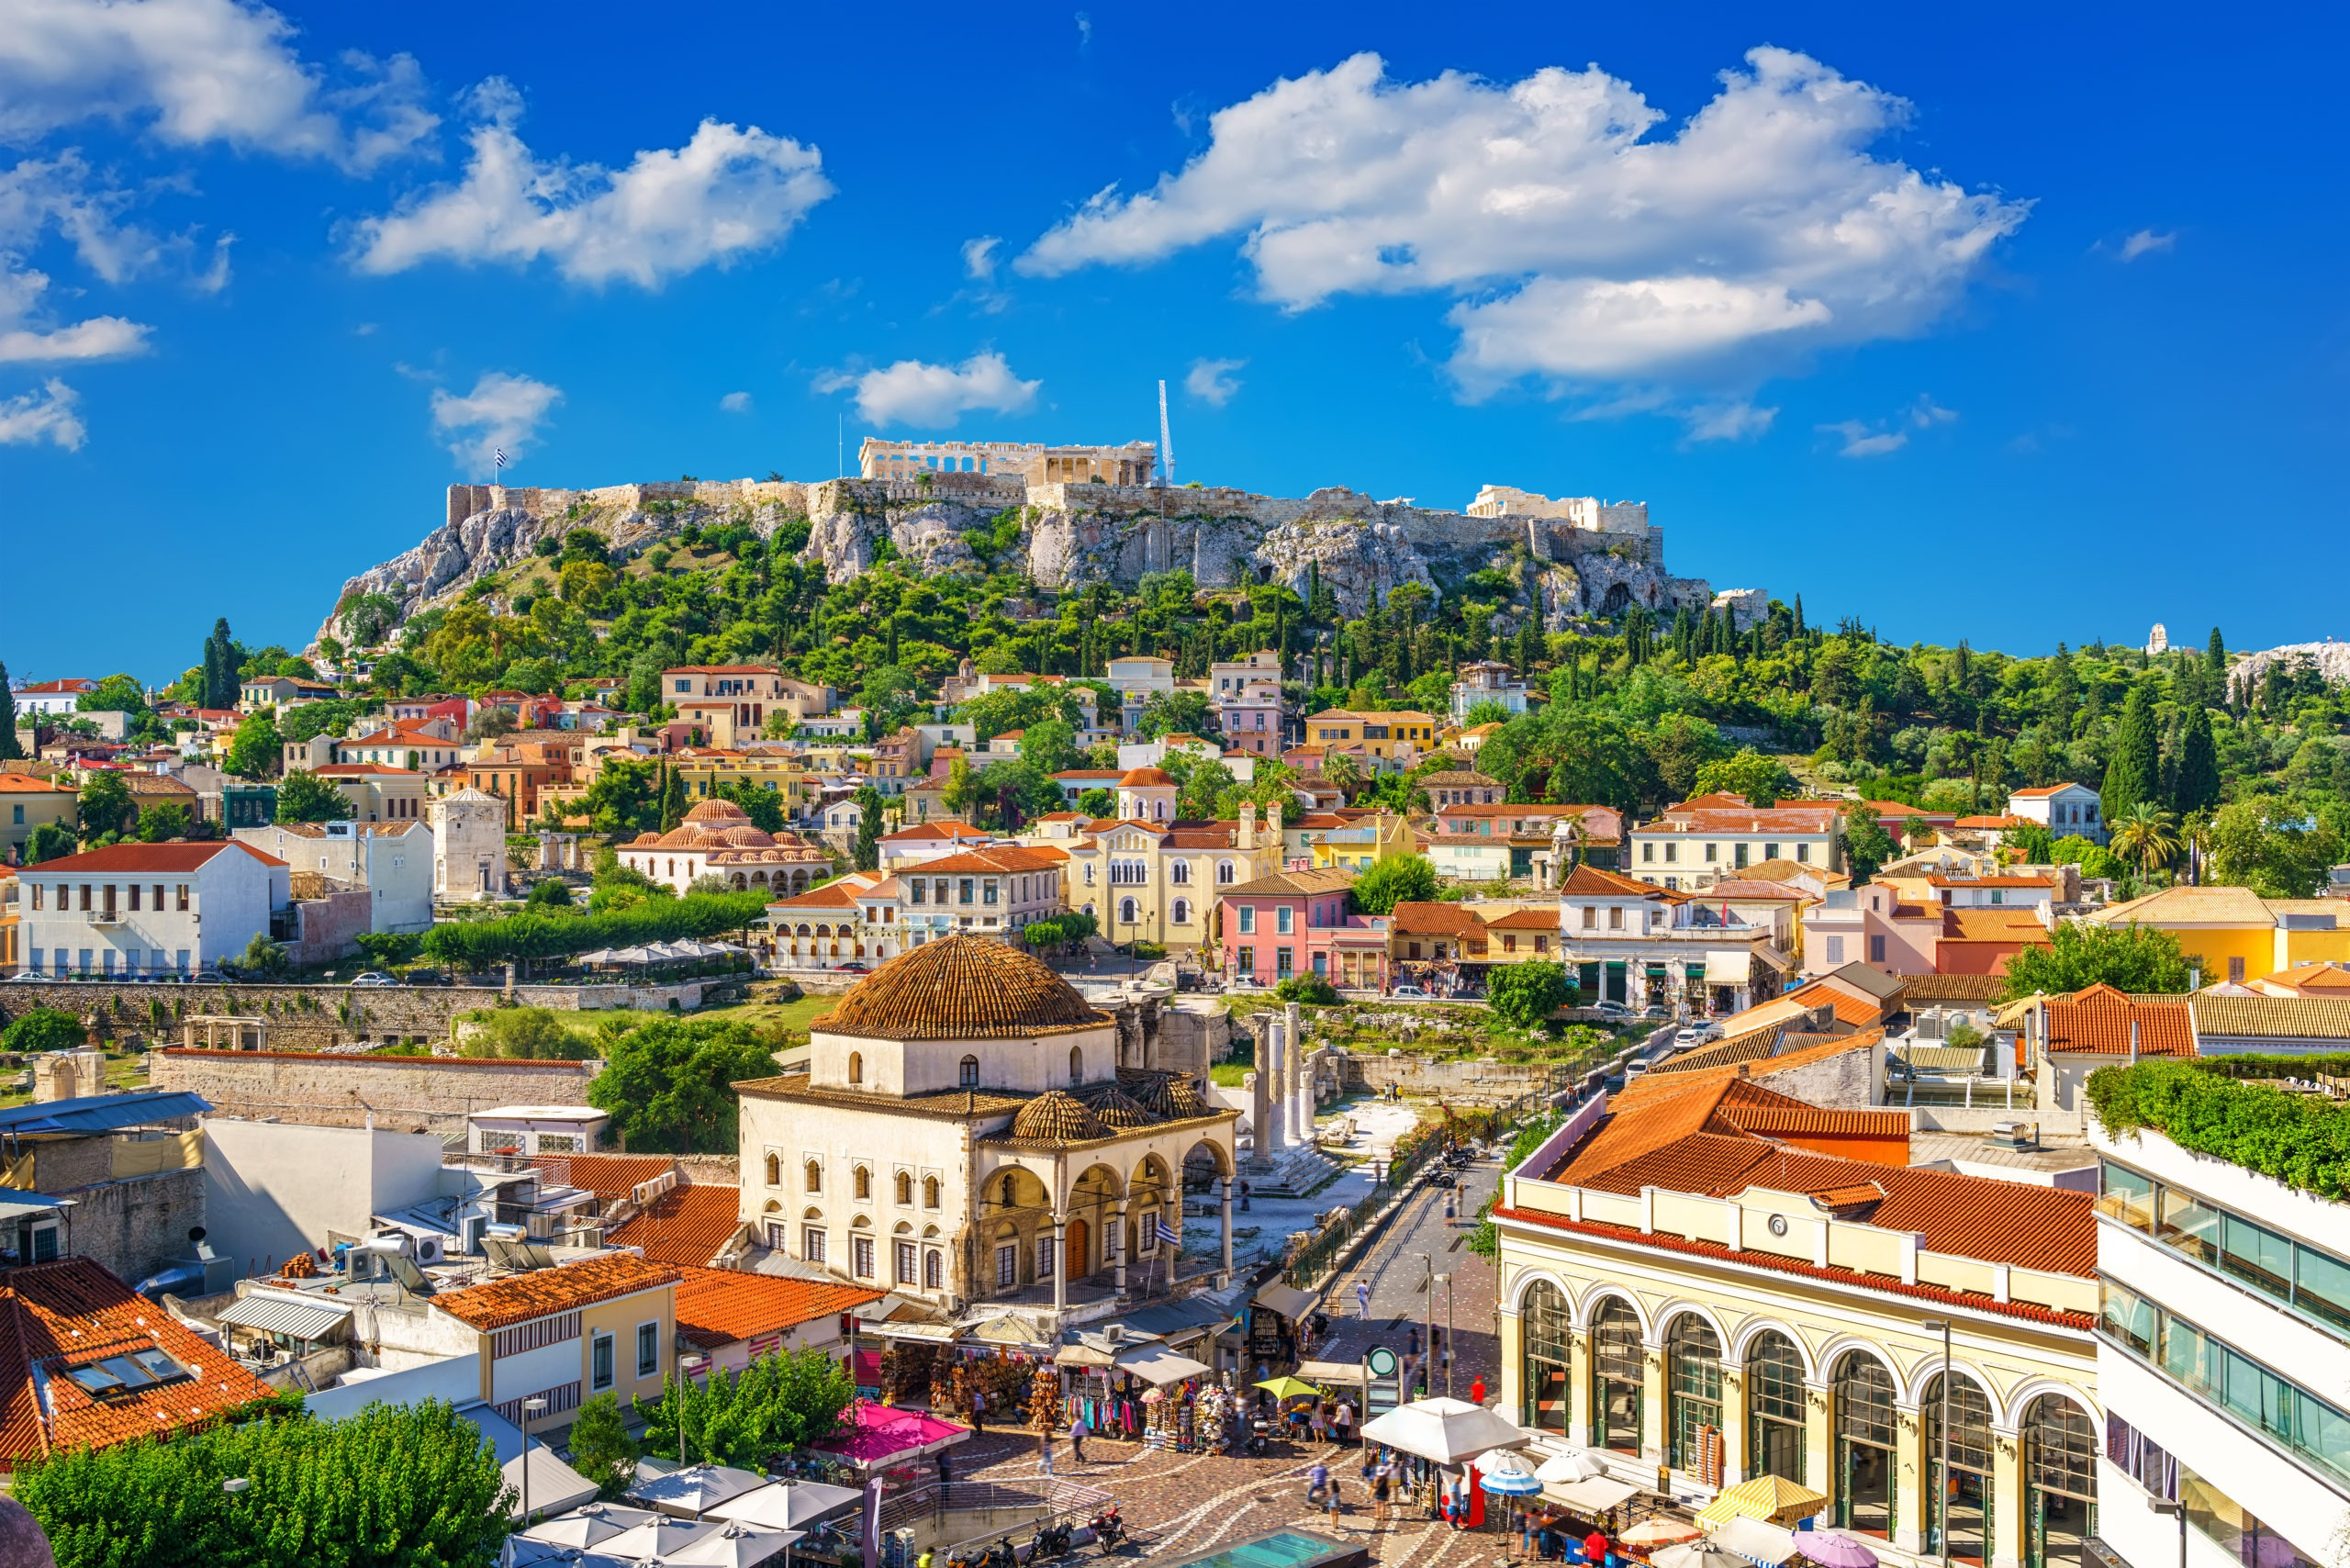 View of the ancient Acropolis hill, as seen from the oldest district of Athens, Plaka. Country: Greece